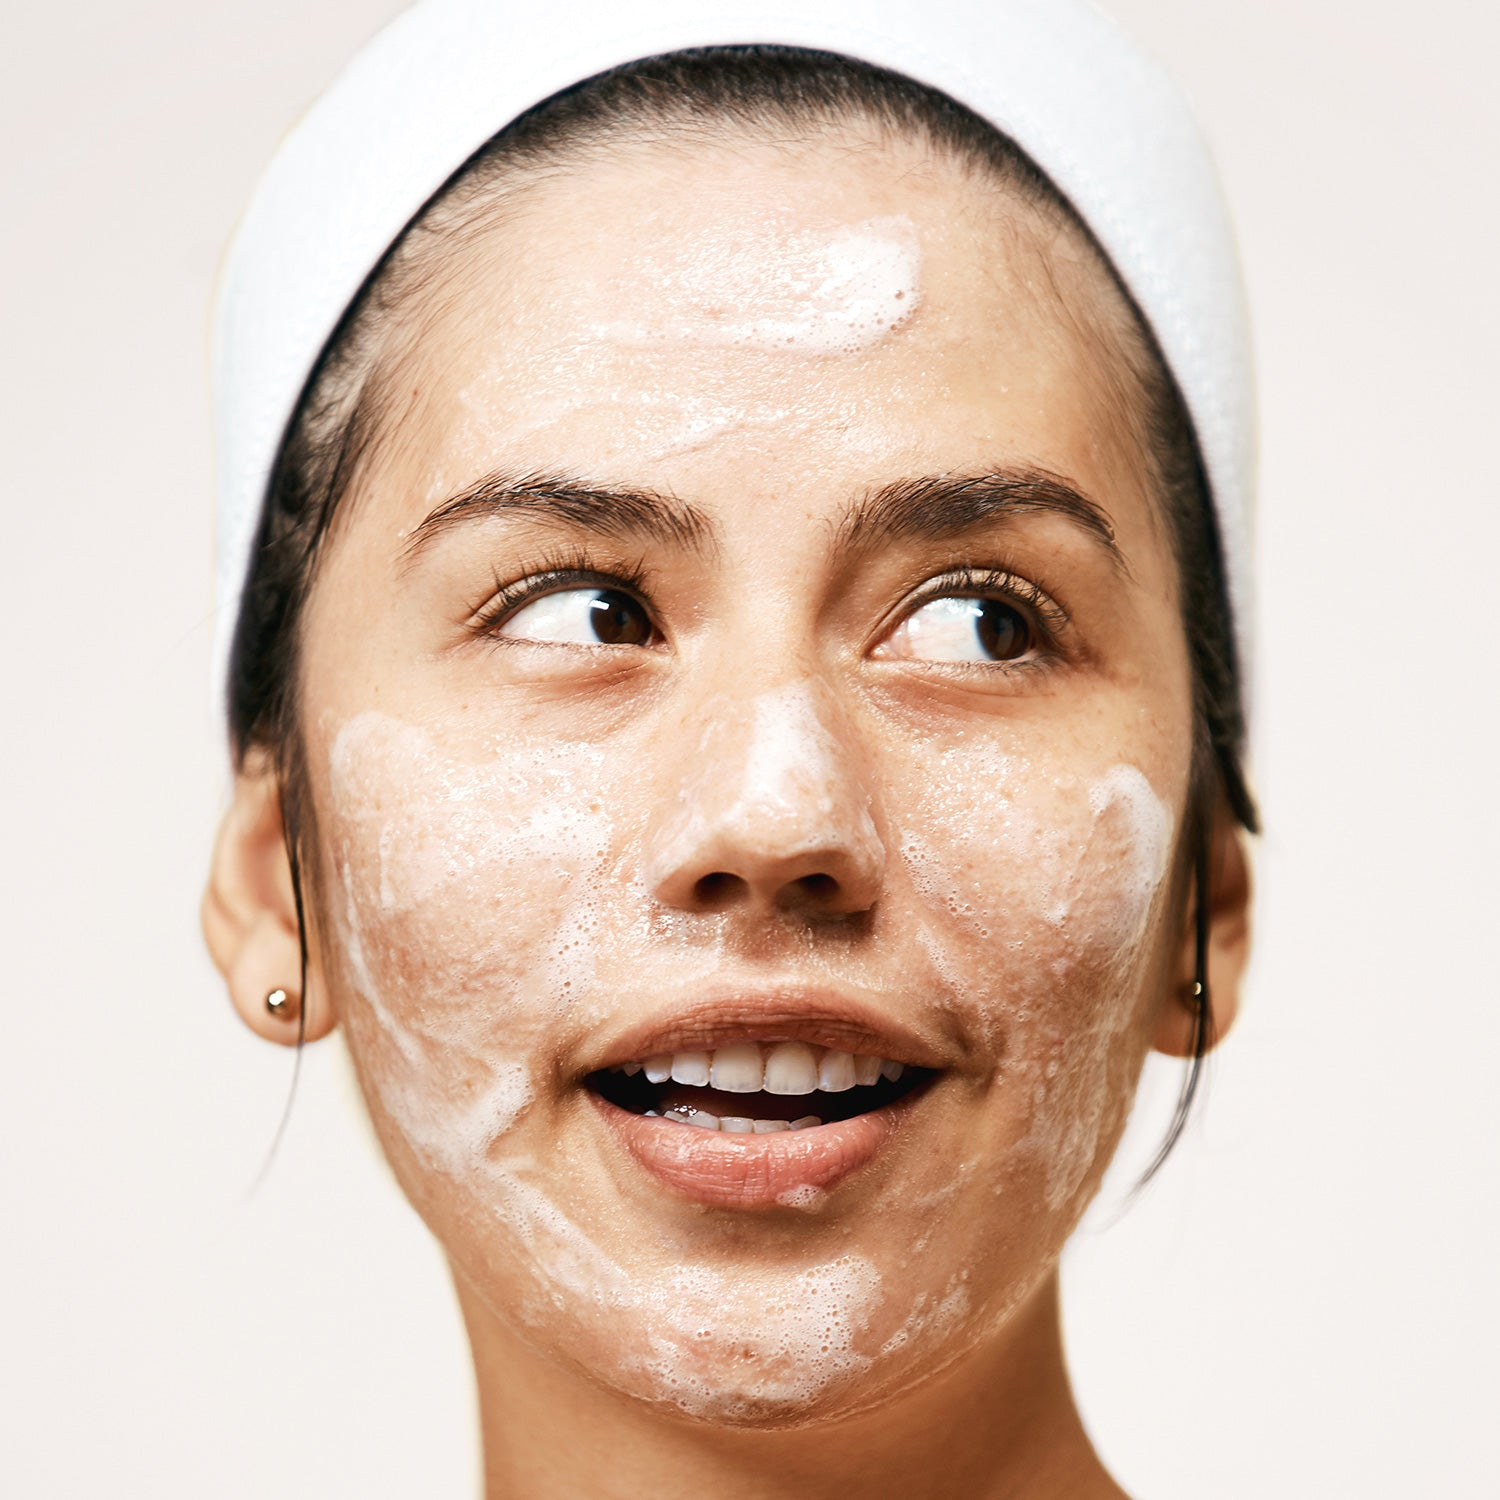 Woman using Exfoliating Jelly Cleanser